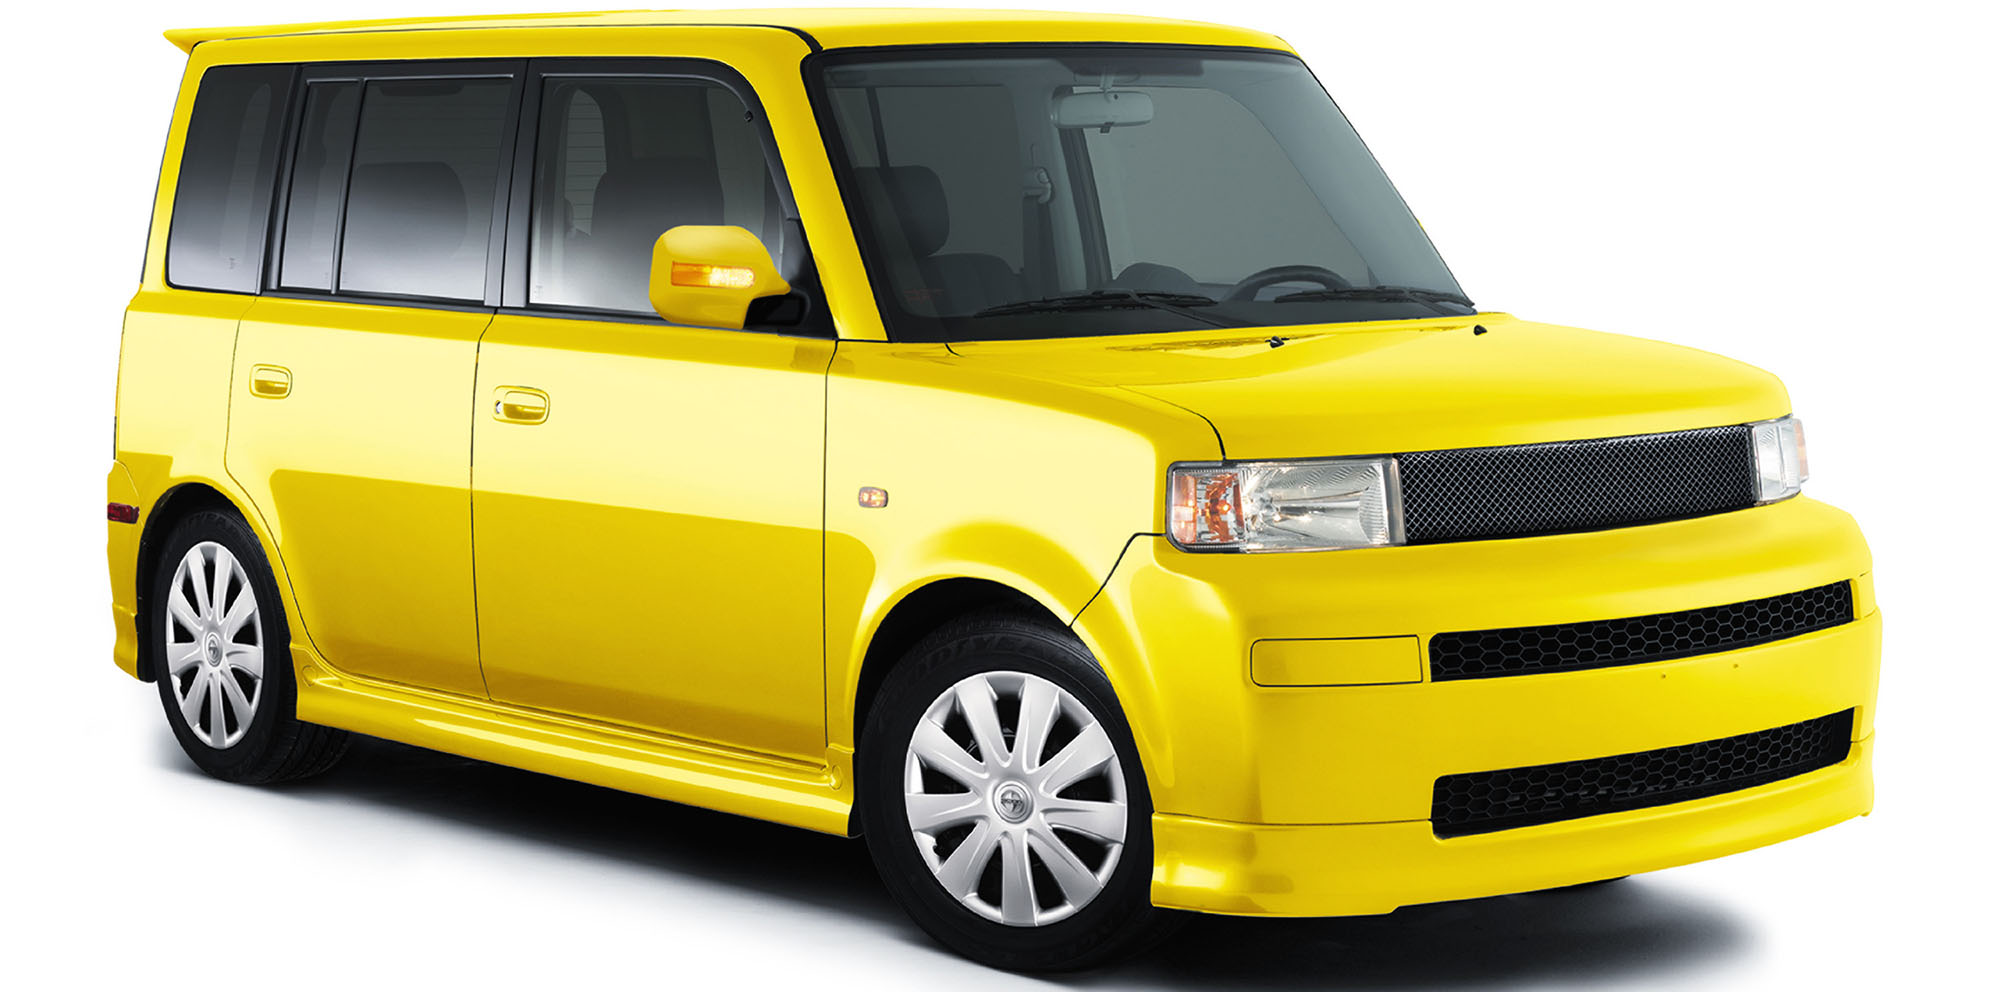 scion brand killed off by toyota photos caradvice. Black Bedroom Furniture Sets. Home Design Ideas